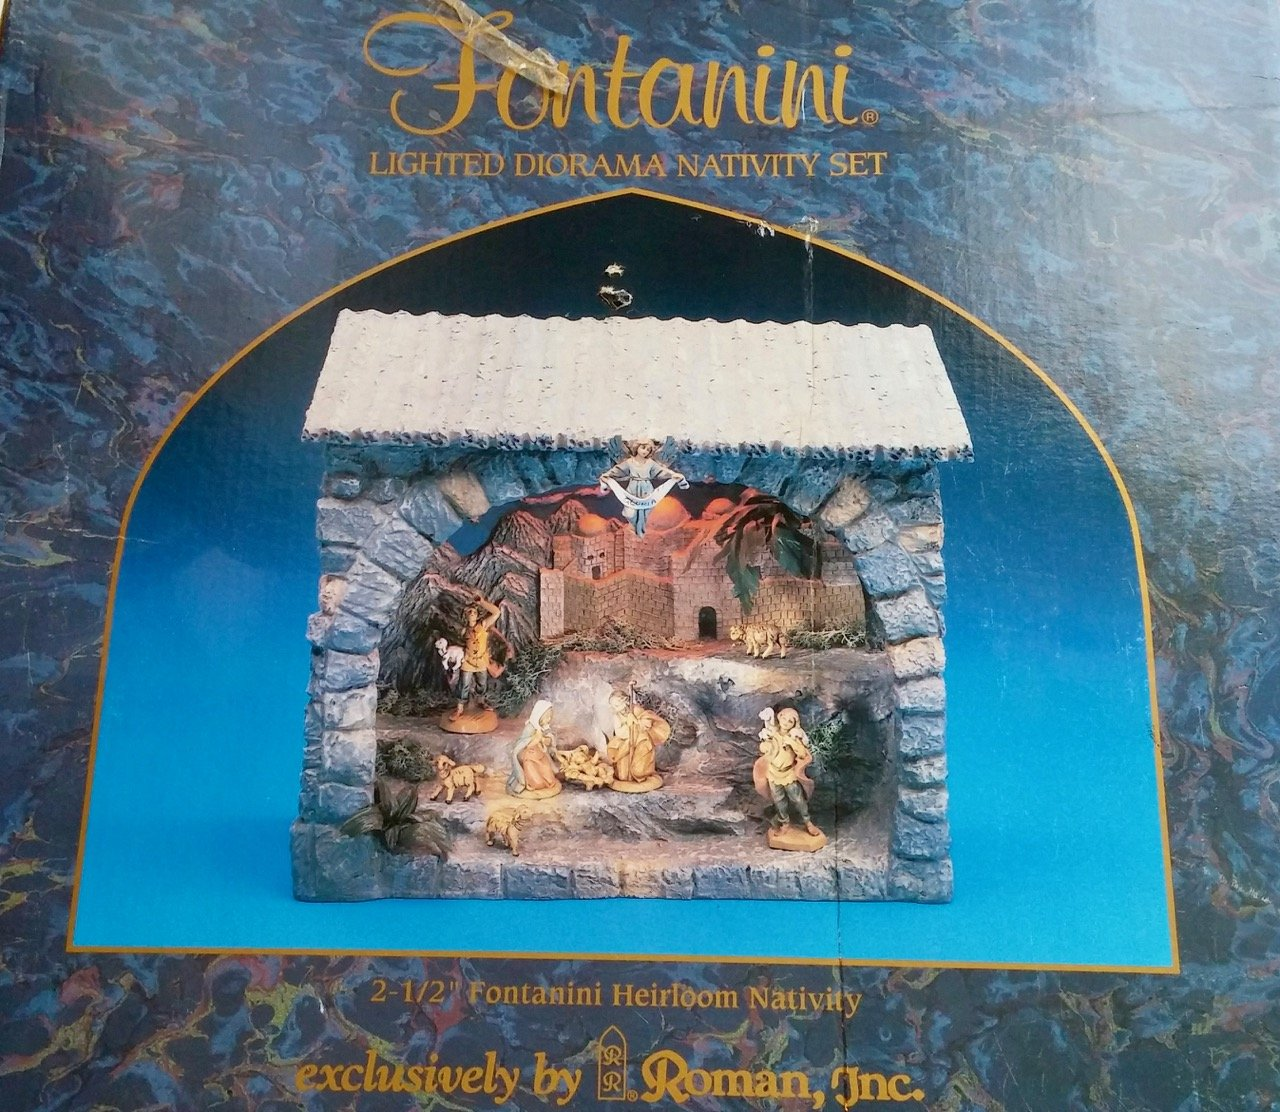 Fontanini Lighted Diorama Nativity Set for 2.5 Heirloom Collection Nativities 54243 by Fontanini® Heirloom Nativity